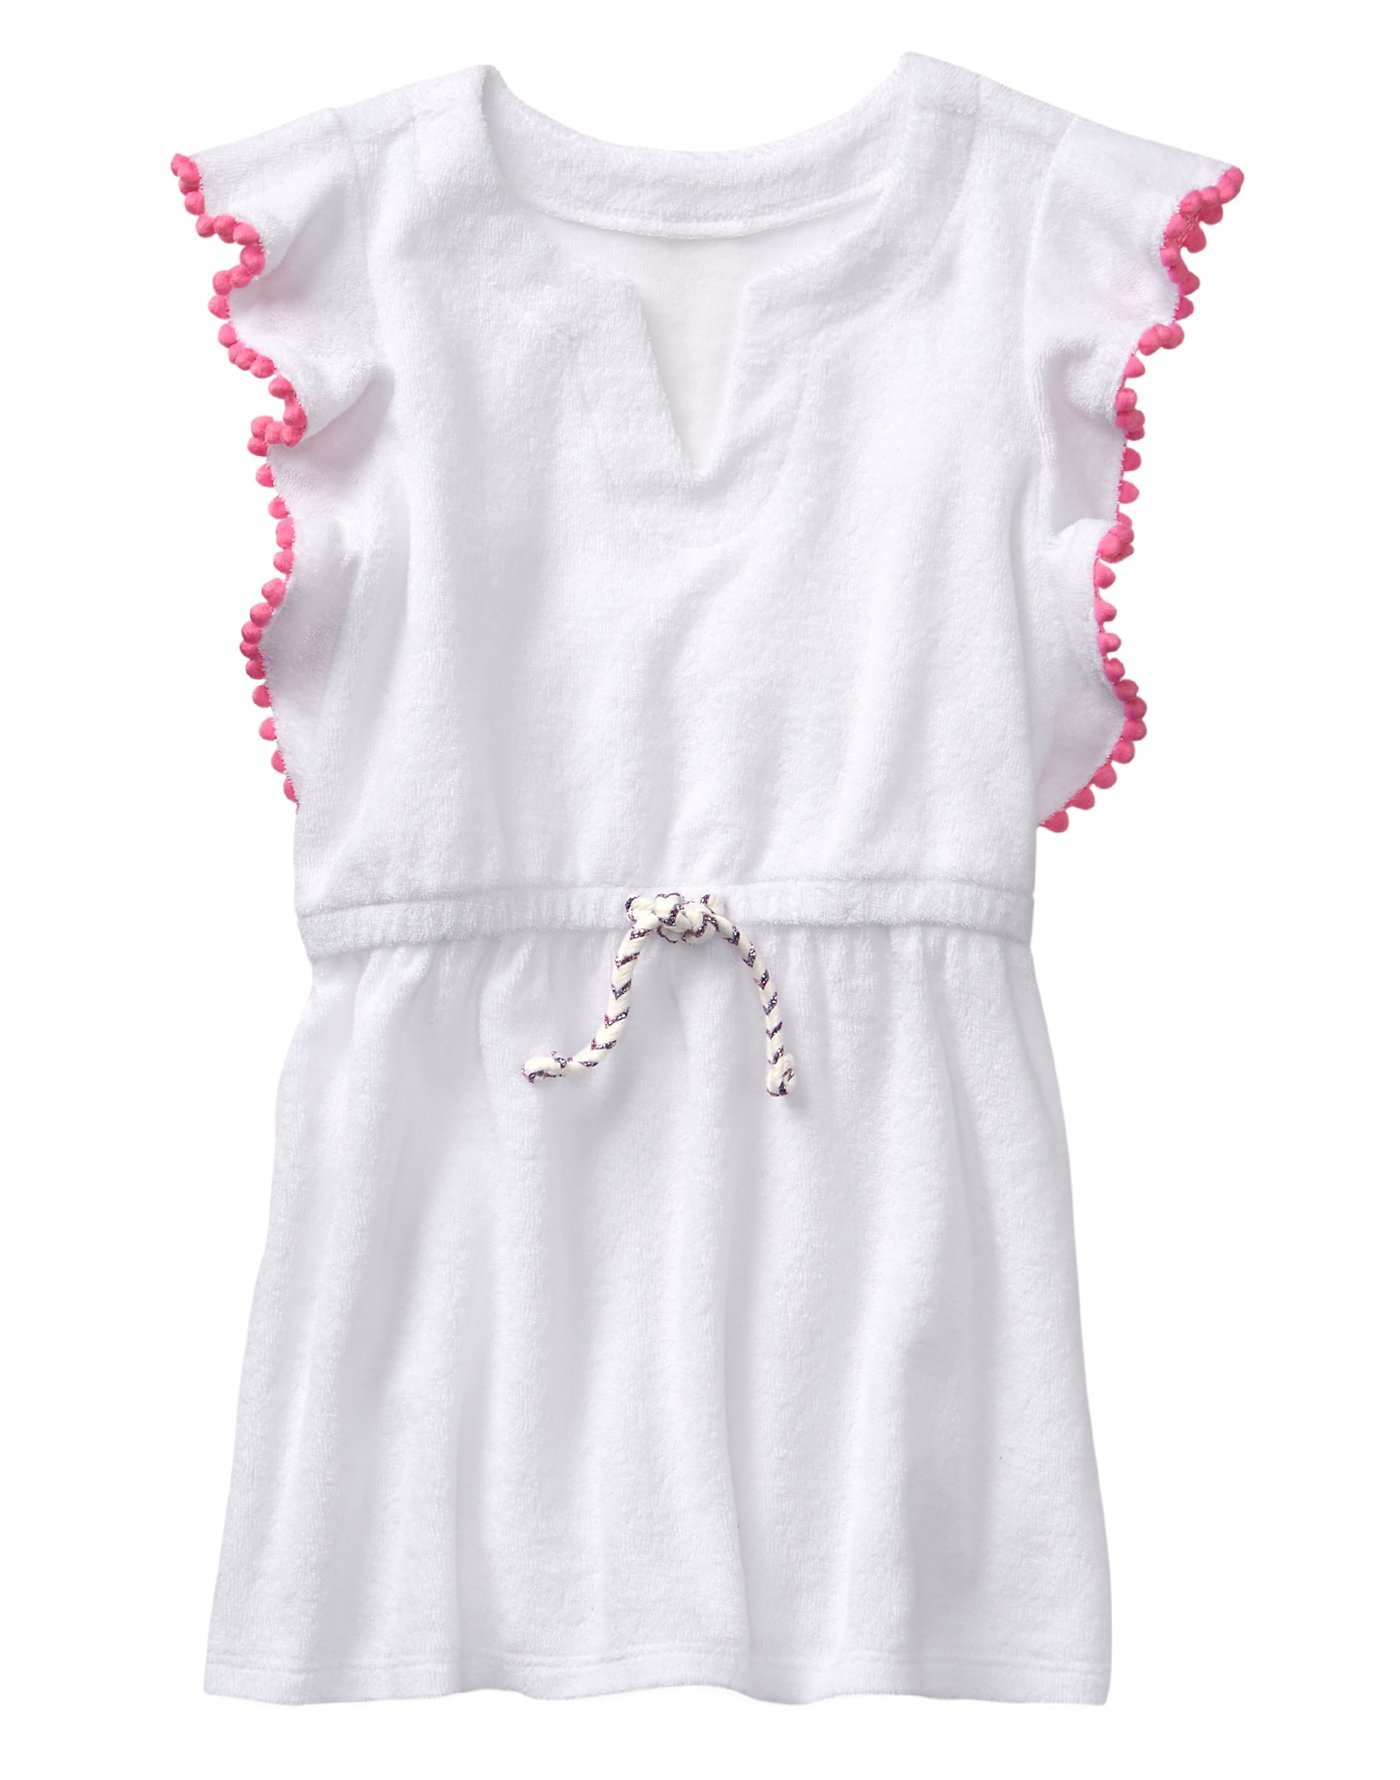 Gymboree Toddler Girls' Swim Cover up with Bobble Trim, White, 2T